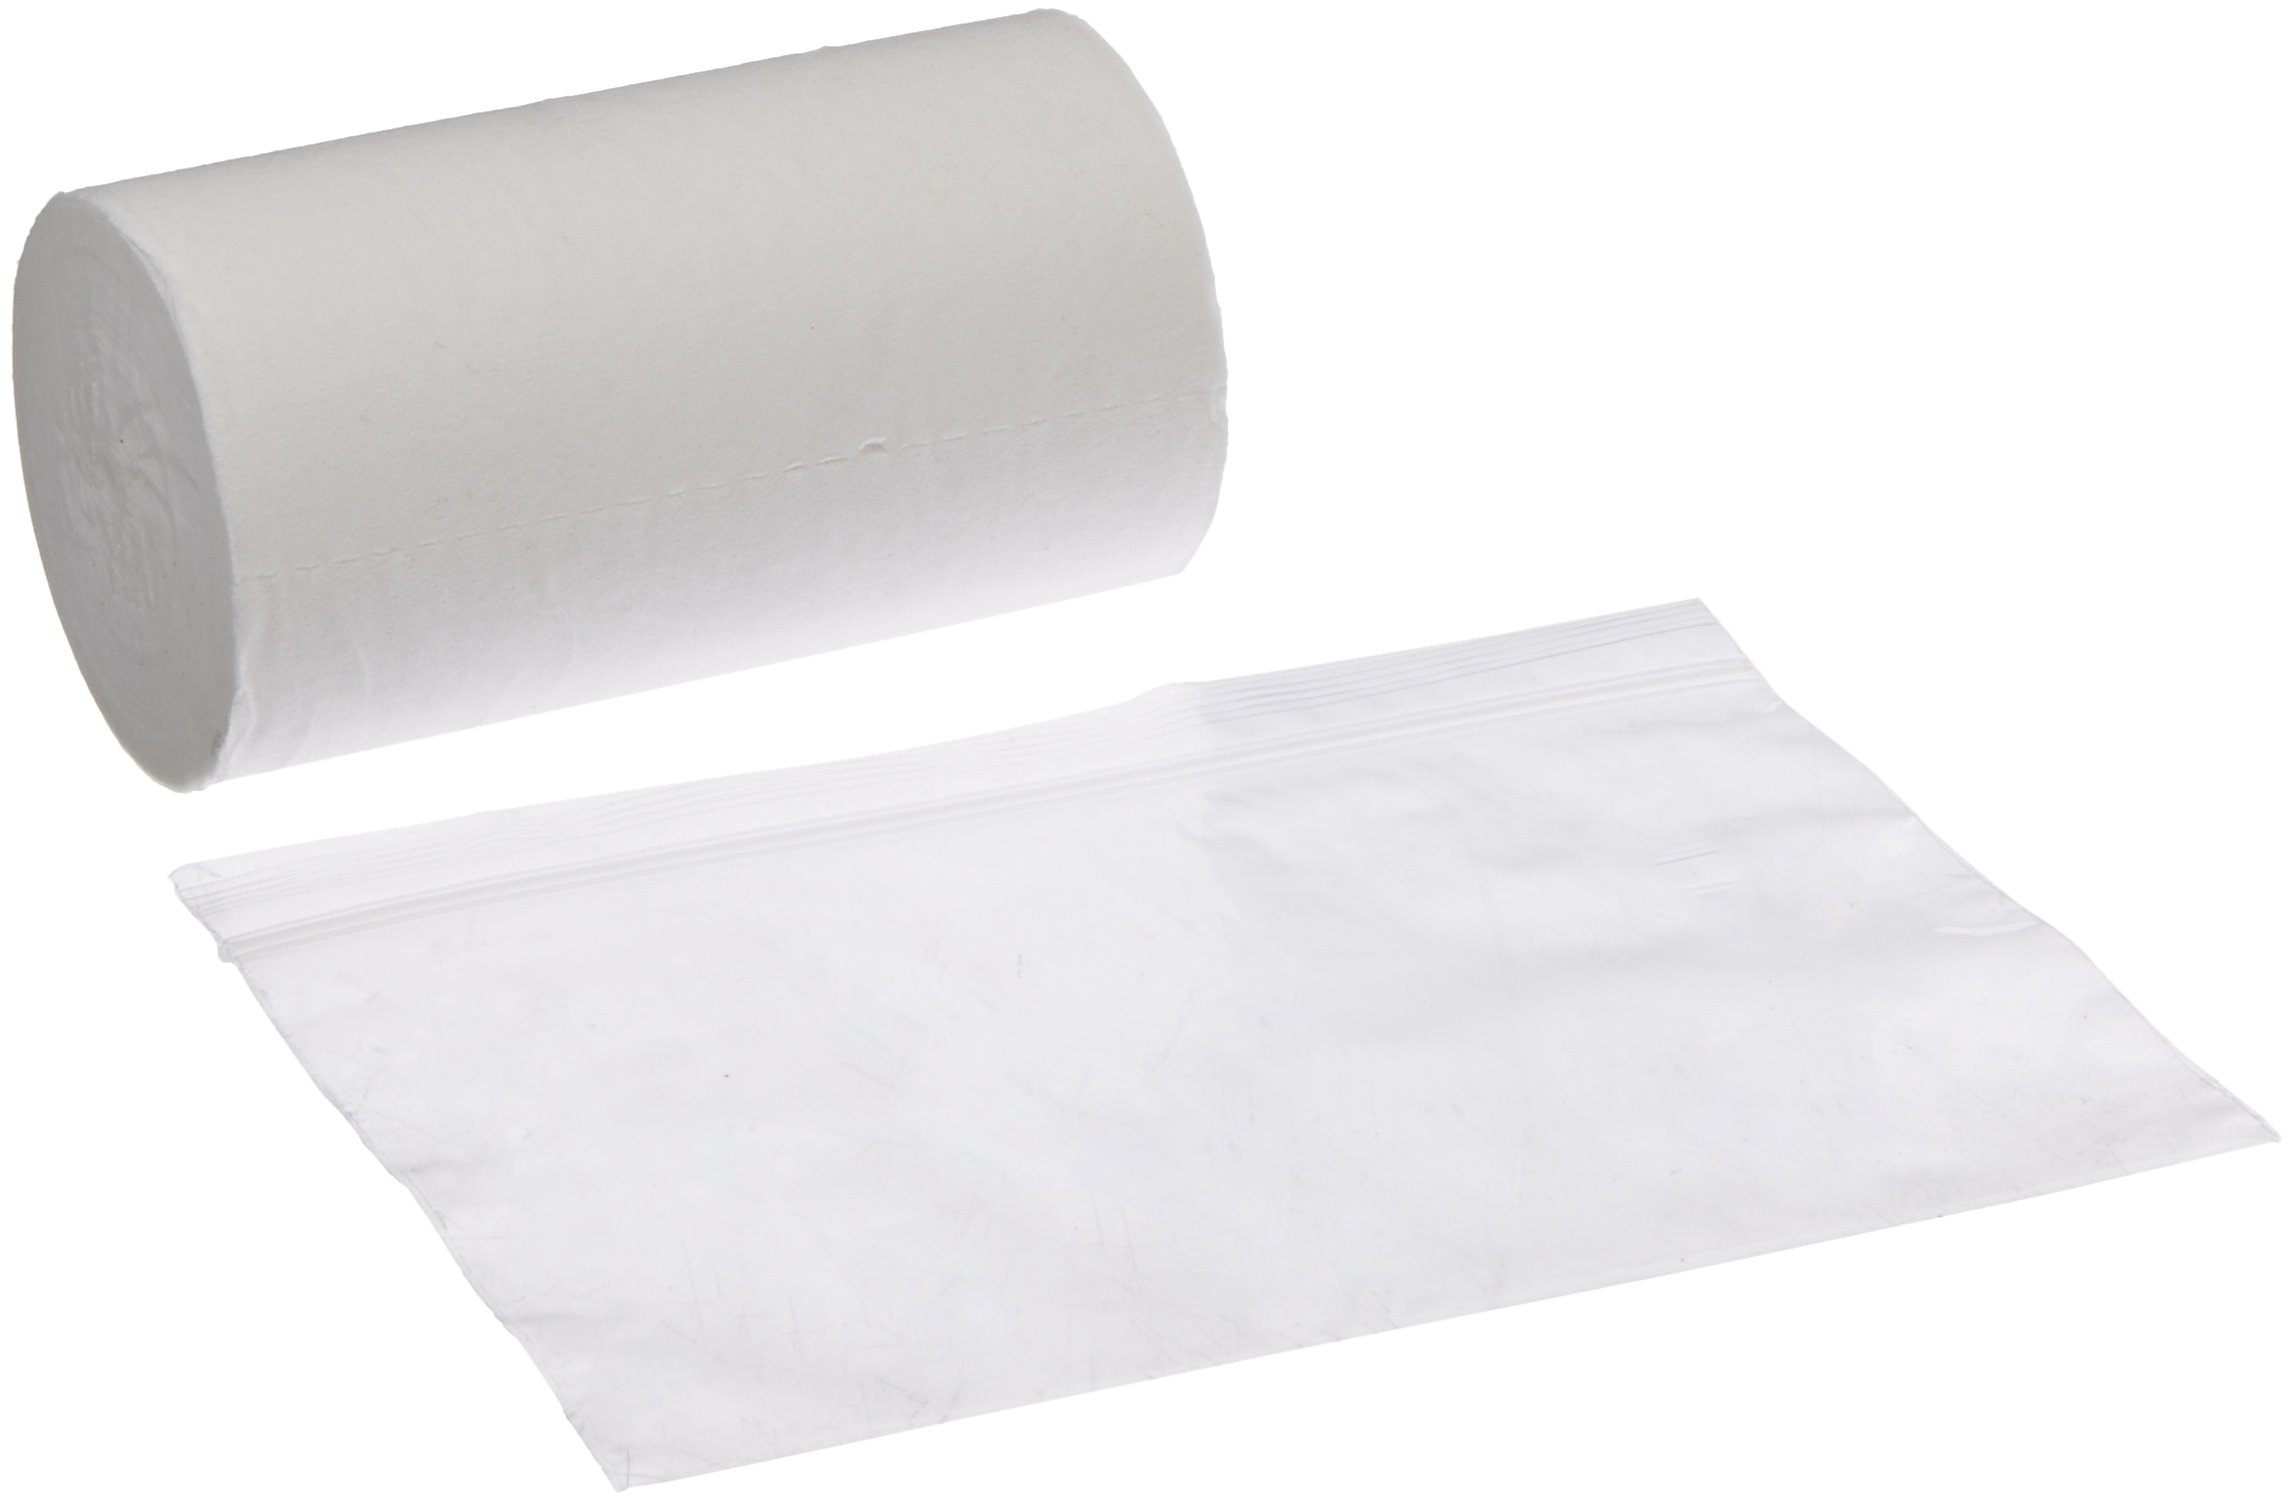 2 Ply Tissue-On-The-Go Coreless Toilet Paper Roll (Pack of 6 Rolls, 225 Sheets per Roll)